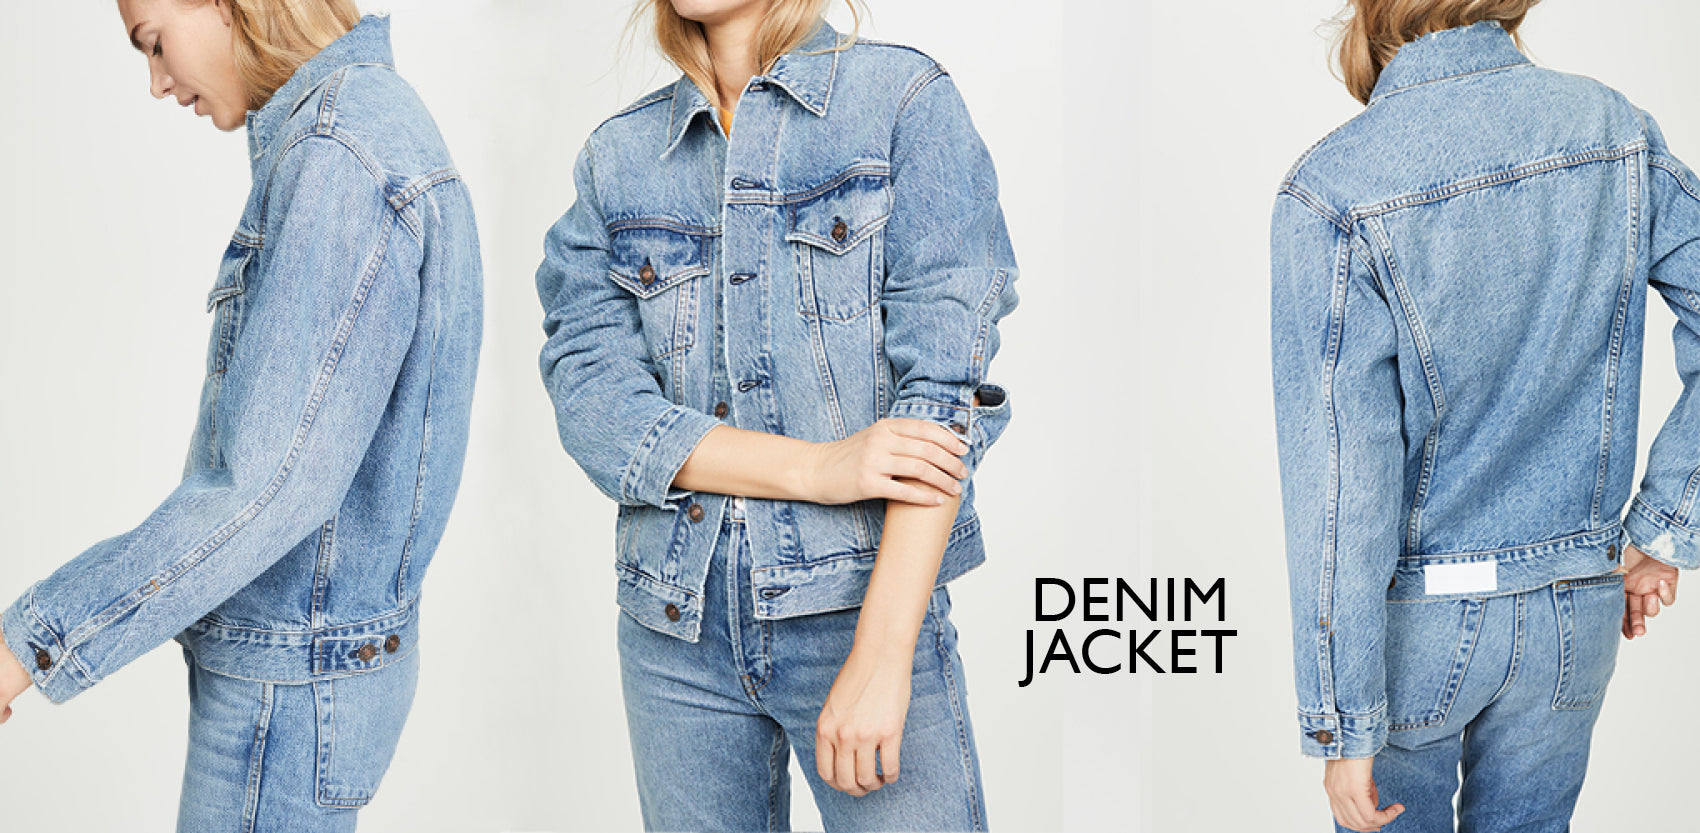 Denim jackets - Capsule wardrobe